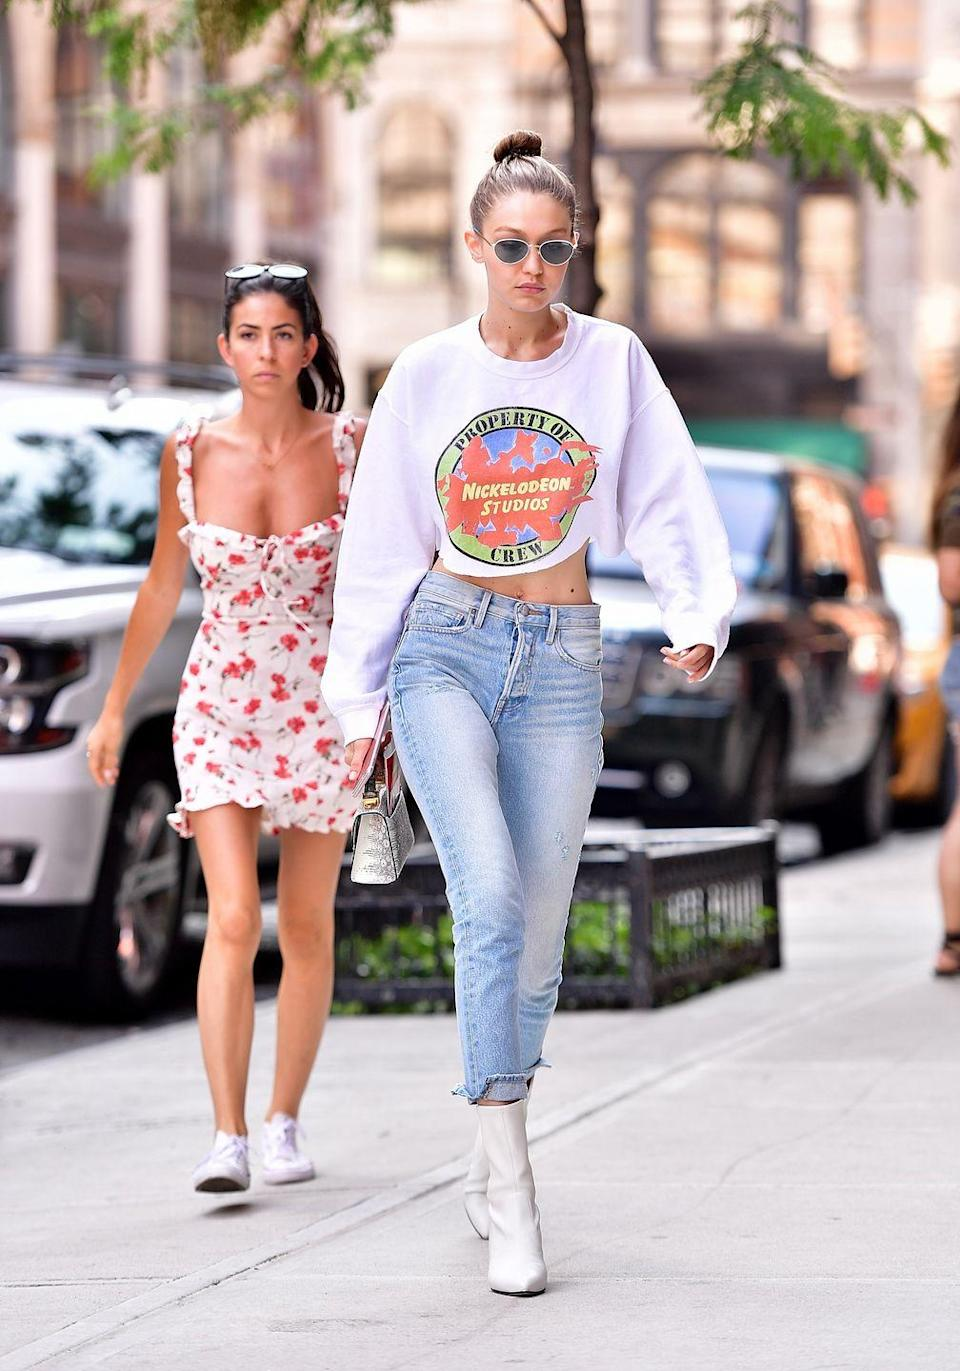 <p>G put a throwback spin on her signature crop top-jeans-booties equation. She rocked an old-school Nickelodeon Studios sweatshirt that my 9-year-old self would have killed for. </p>